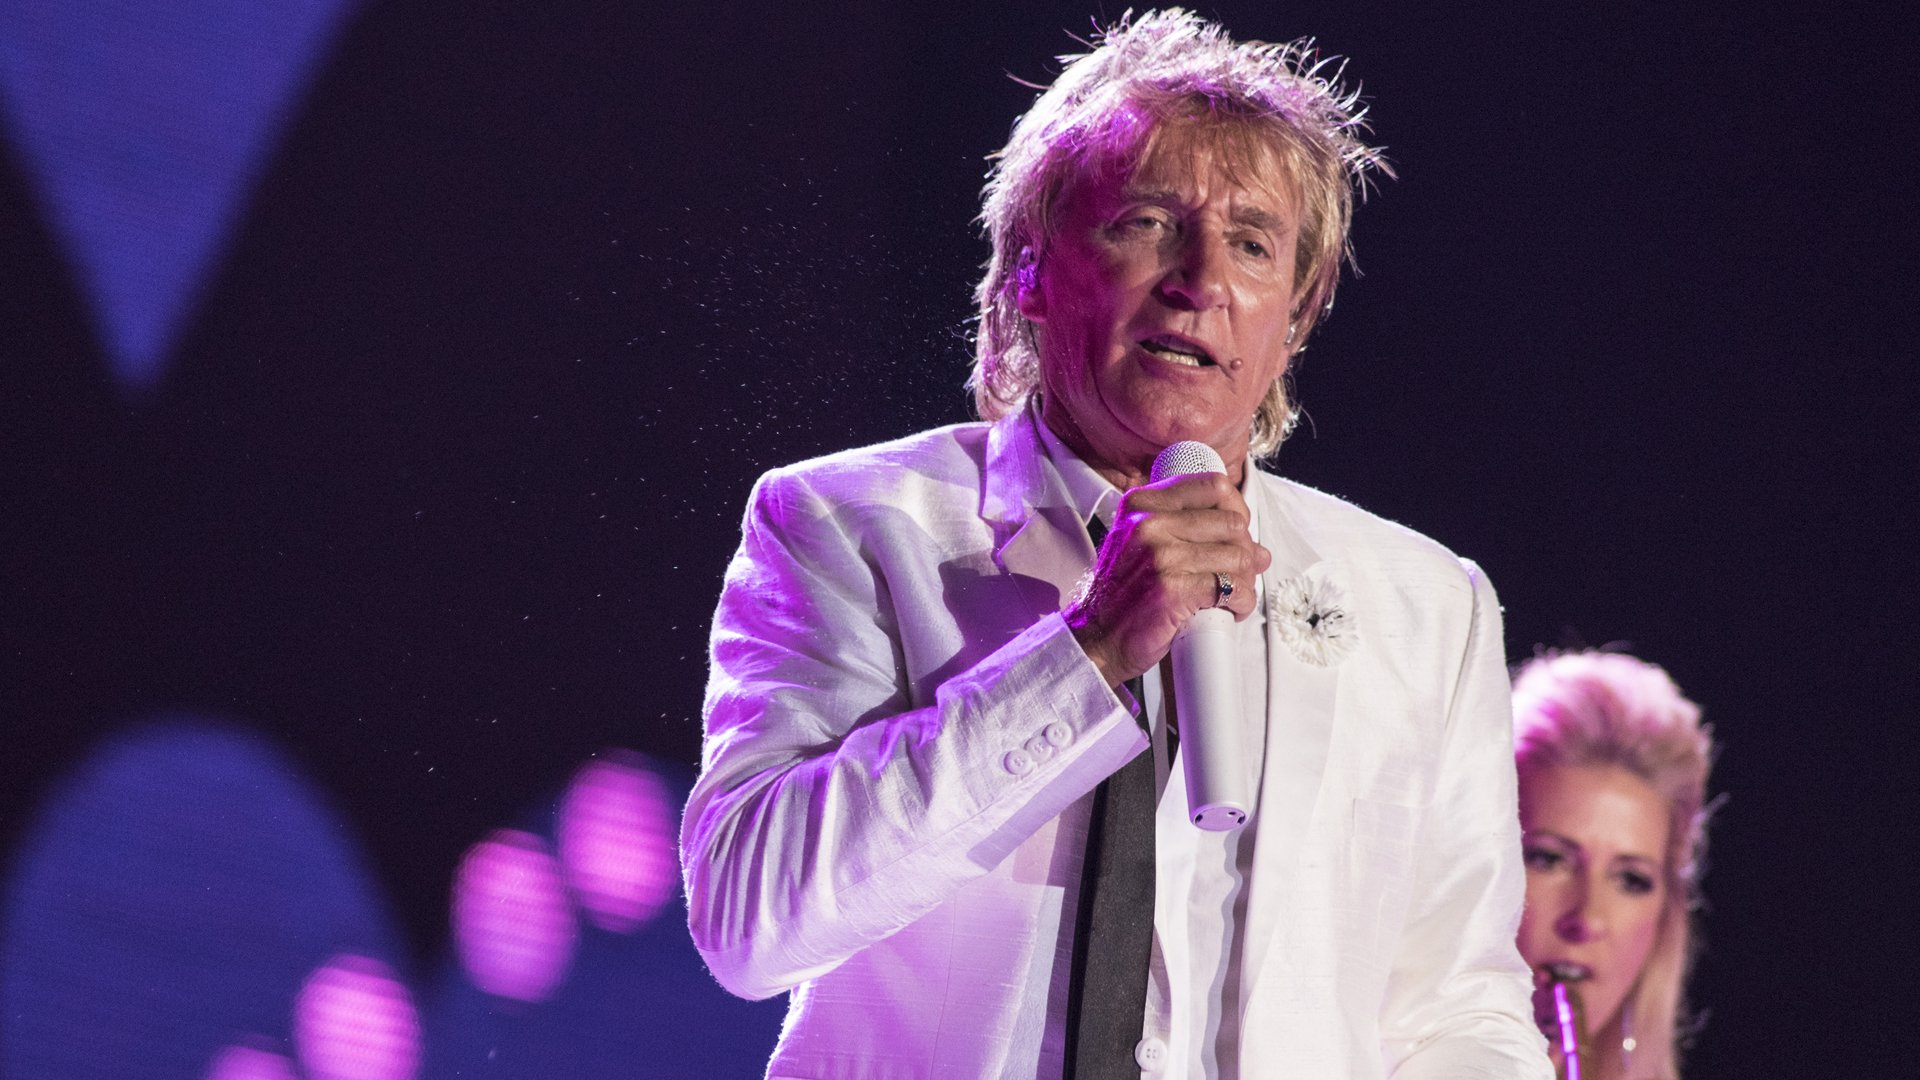 Rod Stewart performs at 2015 Rock in Rio on Sept. 20, 2015, in Rio de Janeiro, Brazil. (Credit: Raphael Dias/Getty Images)